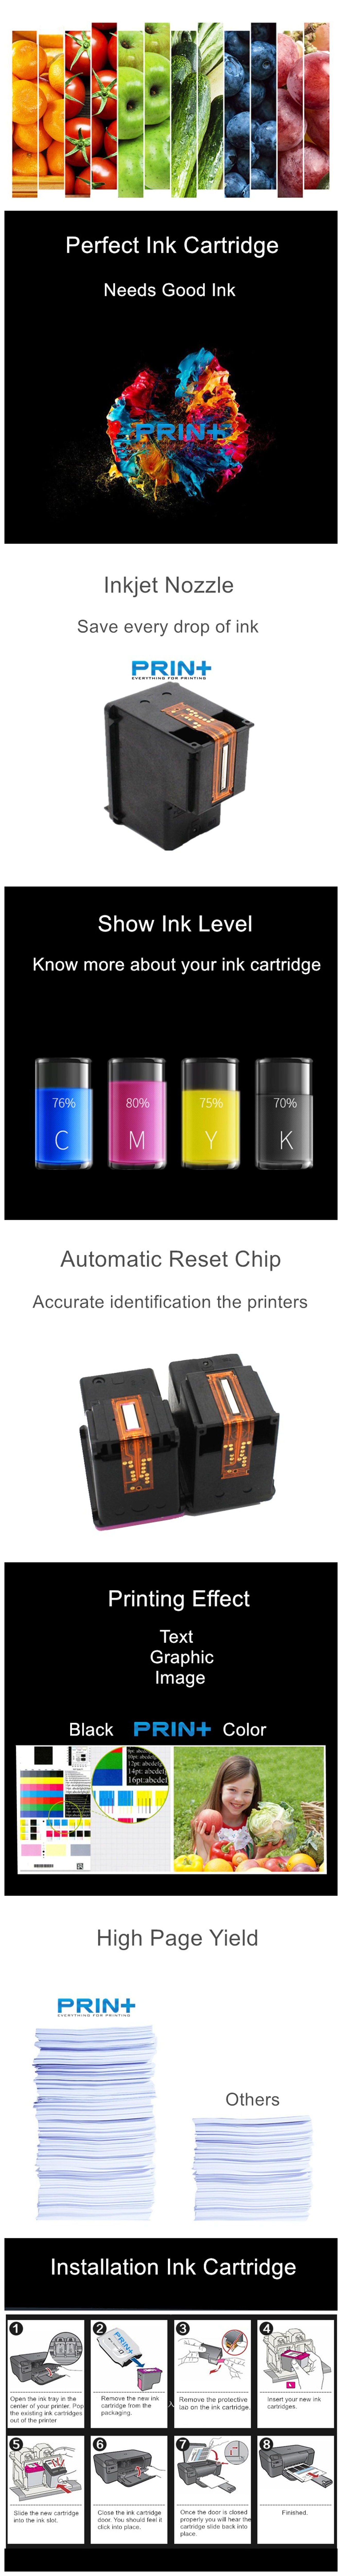 Refilling Ink Cartridges 45 61 XL 63 63XL 65 122 123 652 680 802 933 Compatible Wholesale Black Printer Toners and Ink Cartridge